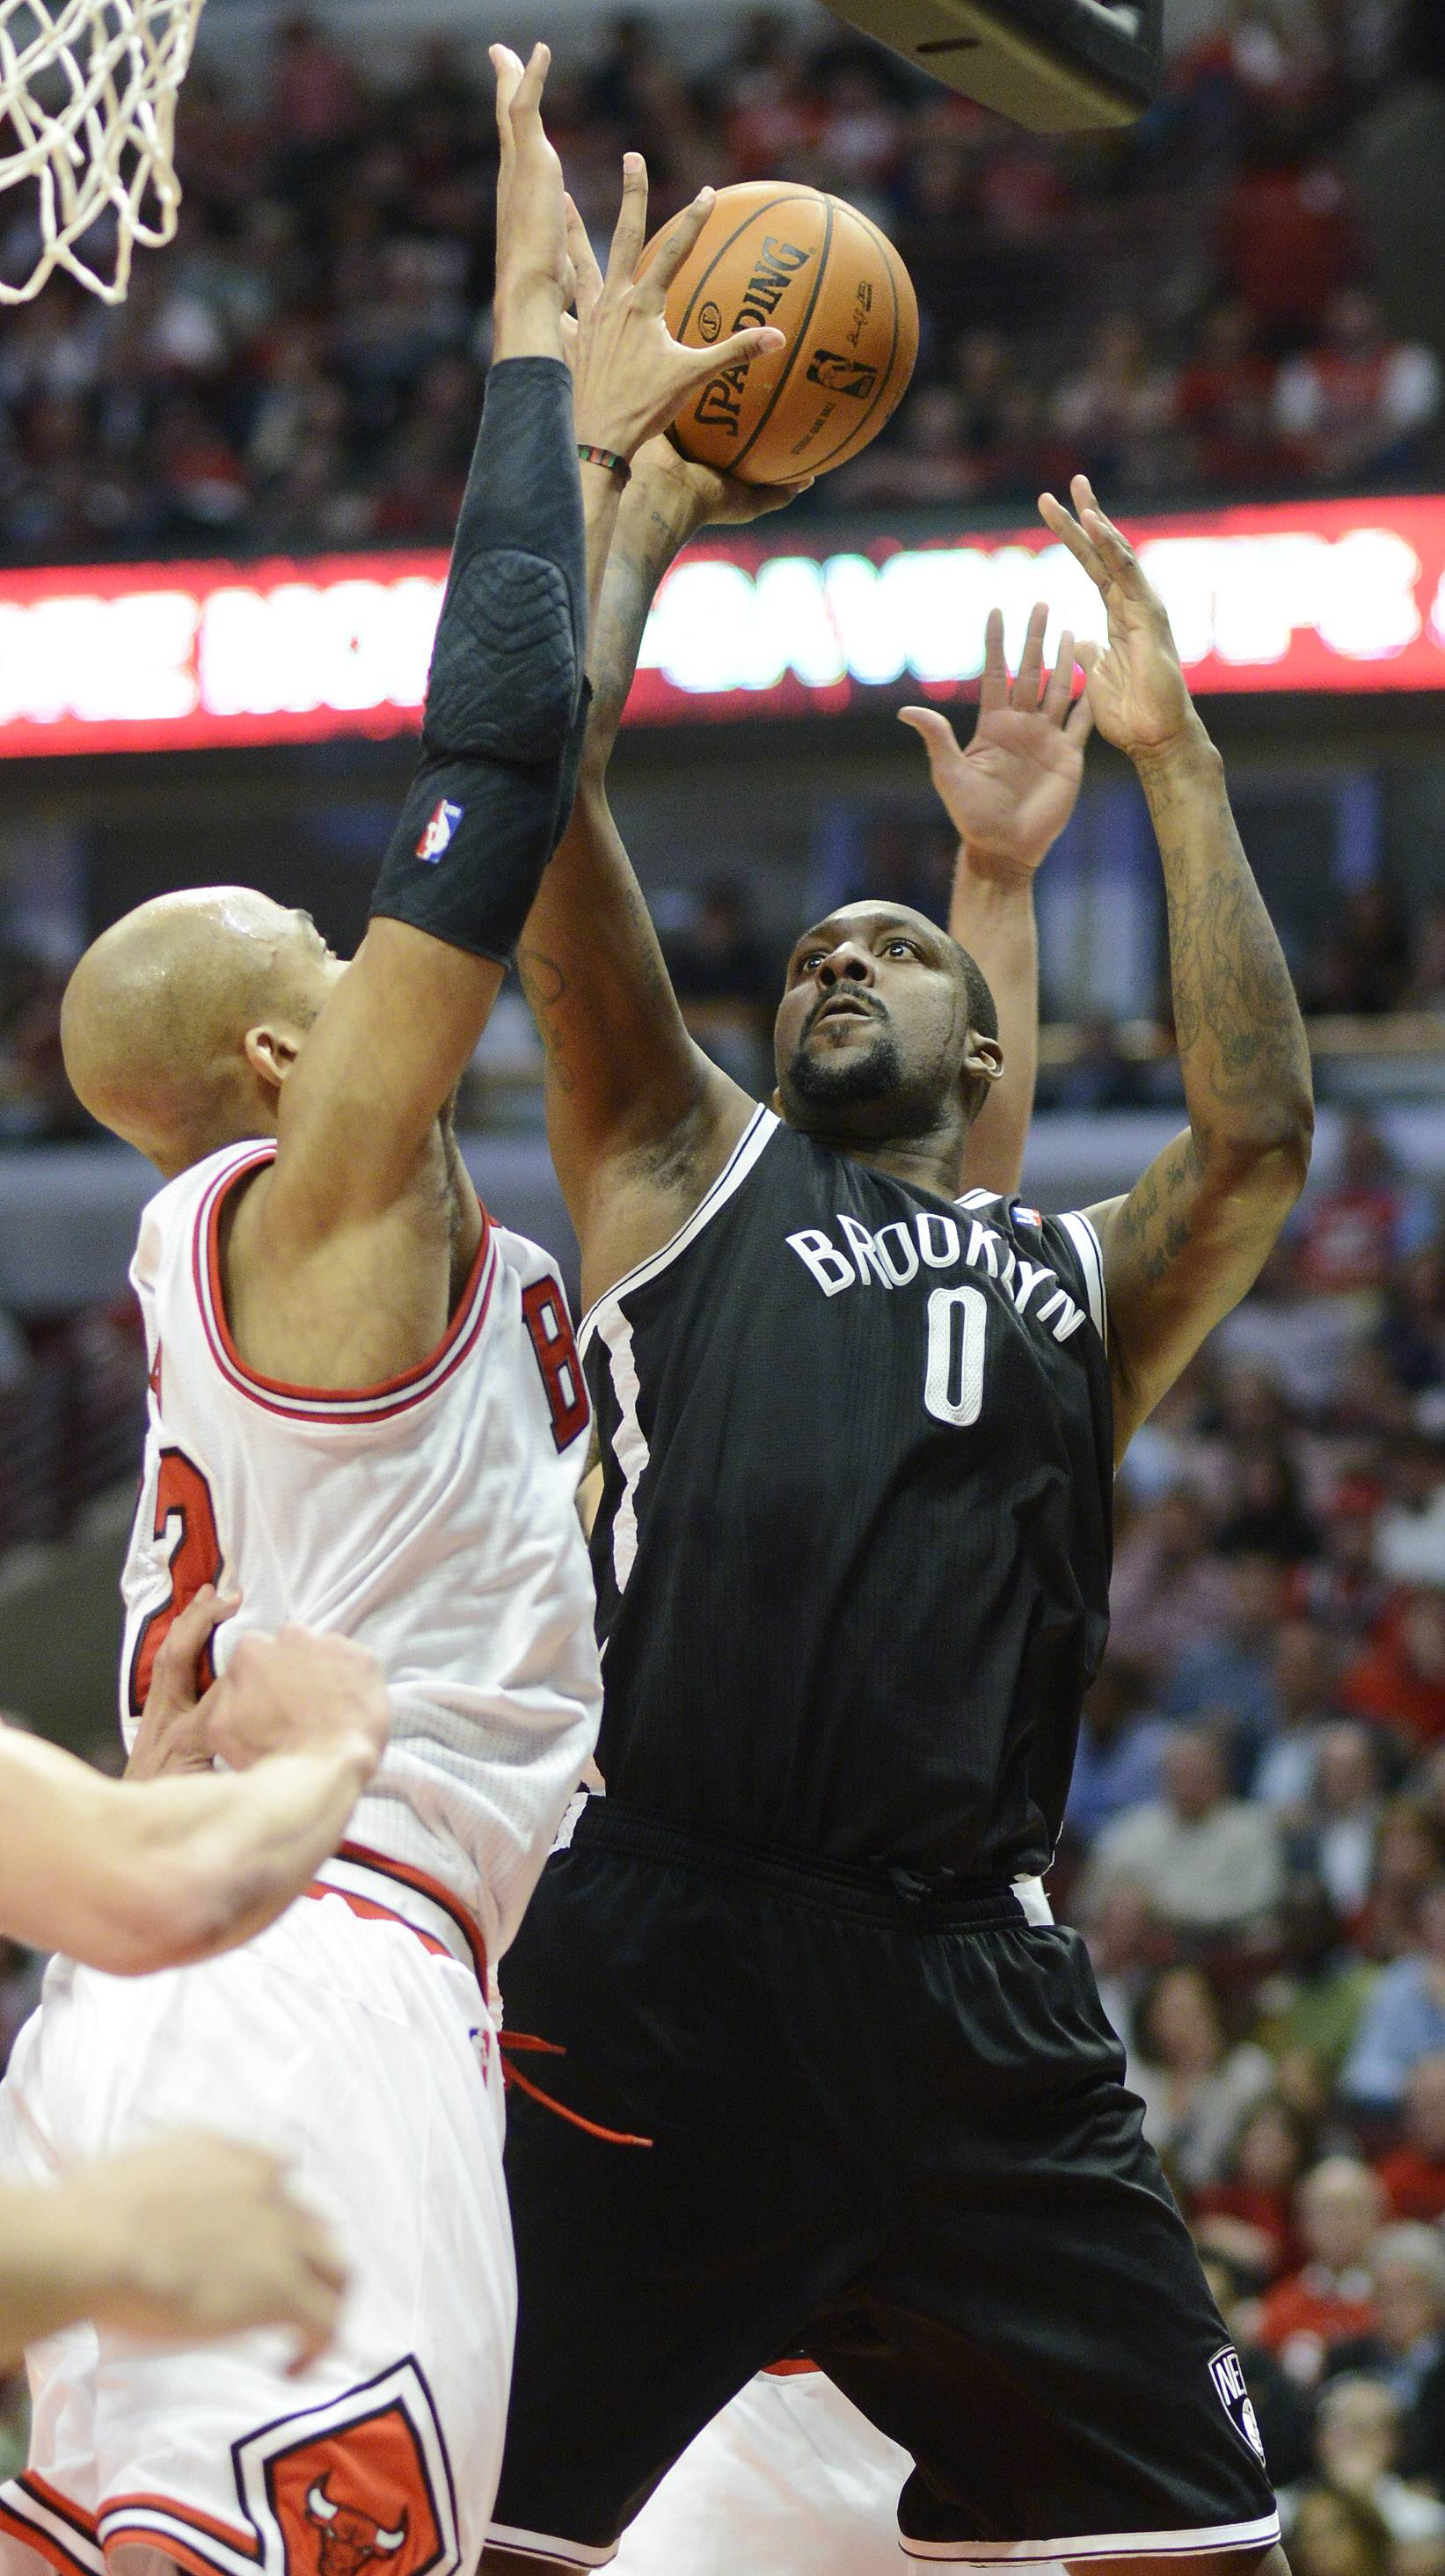 Andray Blatche of the Brooklyn Nets goes to the basket against Taj Gibson Chicago Bulls in Game 6 of the first round playoff game at the United Center in Chicago, Thursday, May 2, 2013.